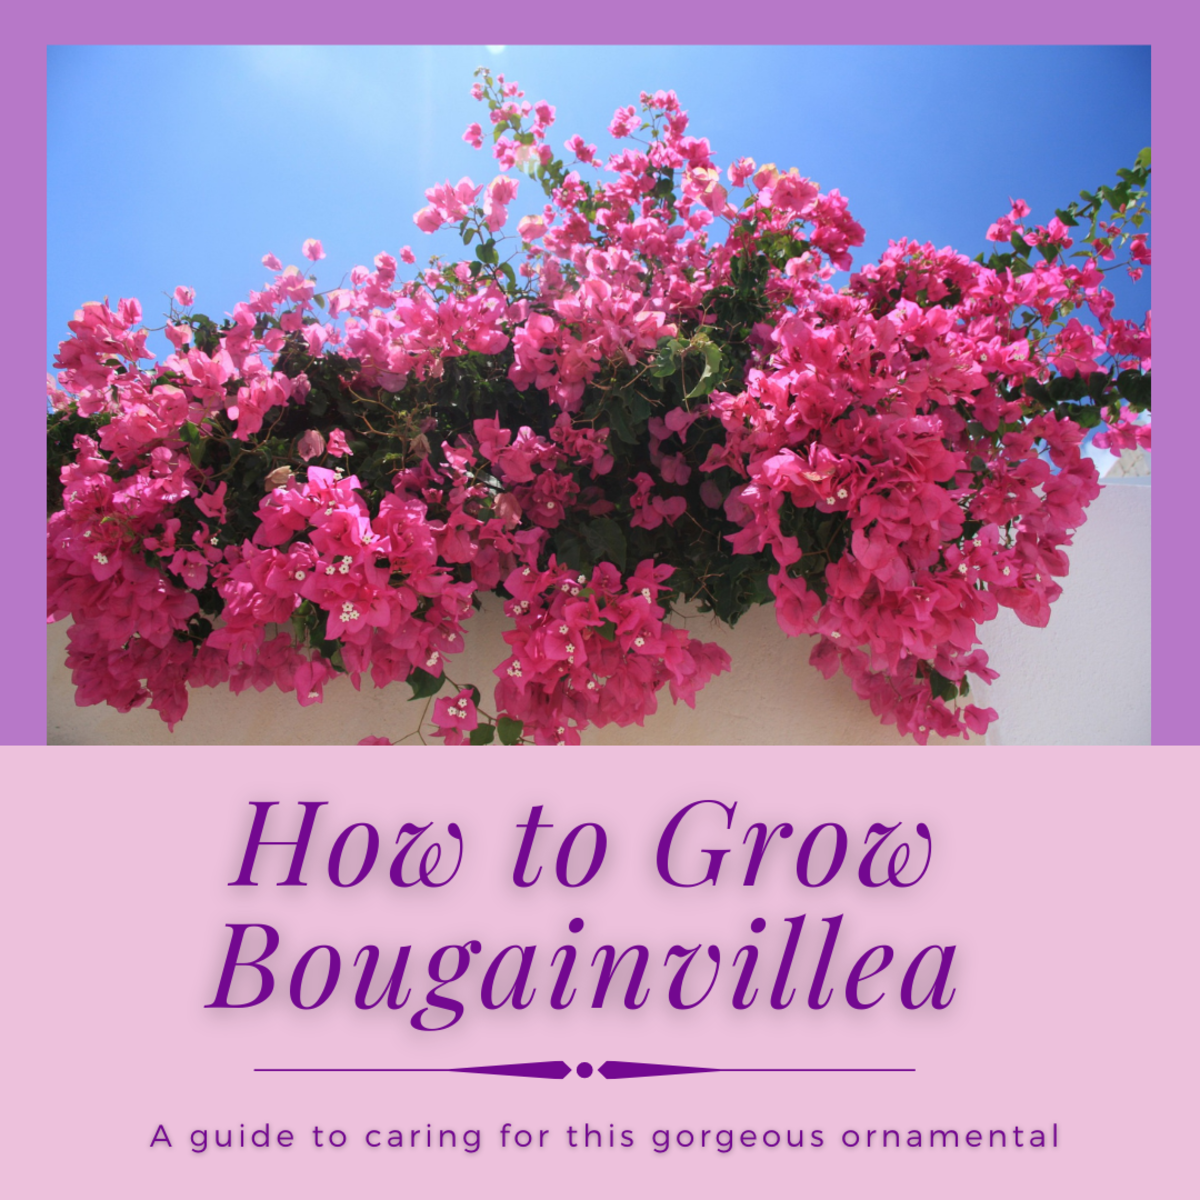 This article will provide you with all the information you need to grow gorgeous, bountiful bougainvillea flowers.